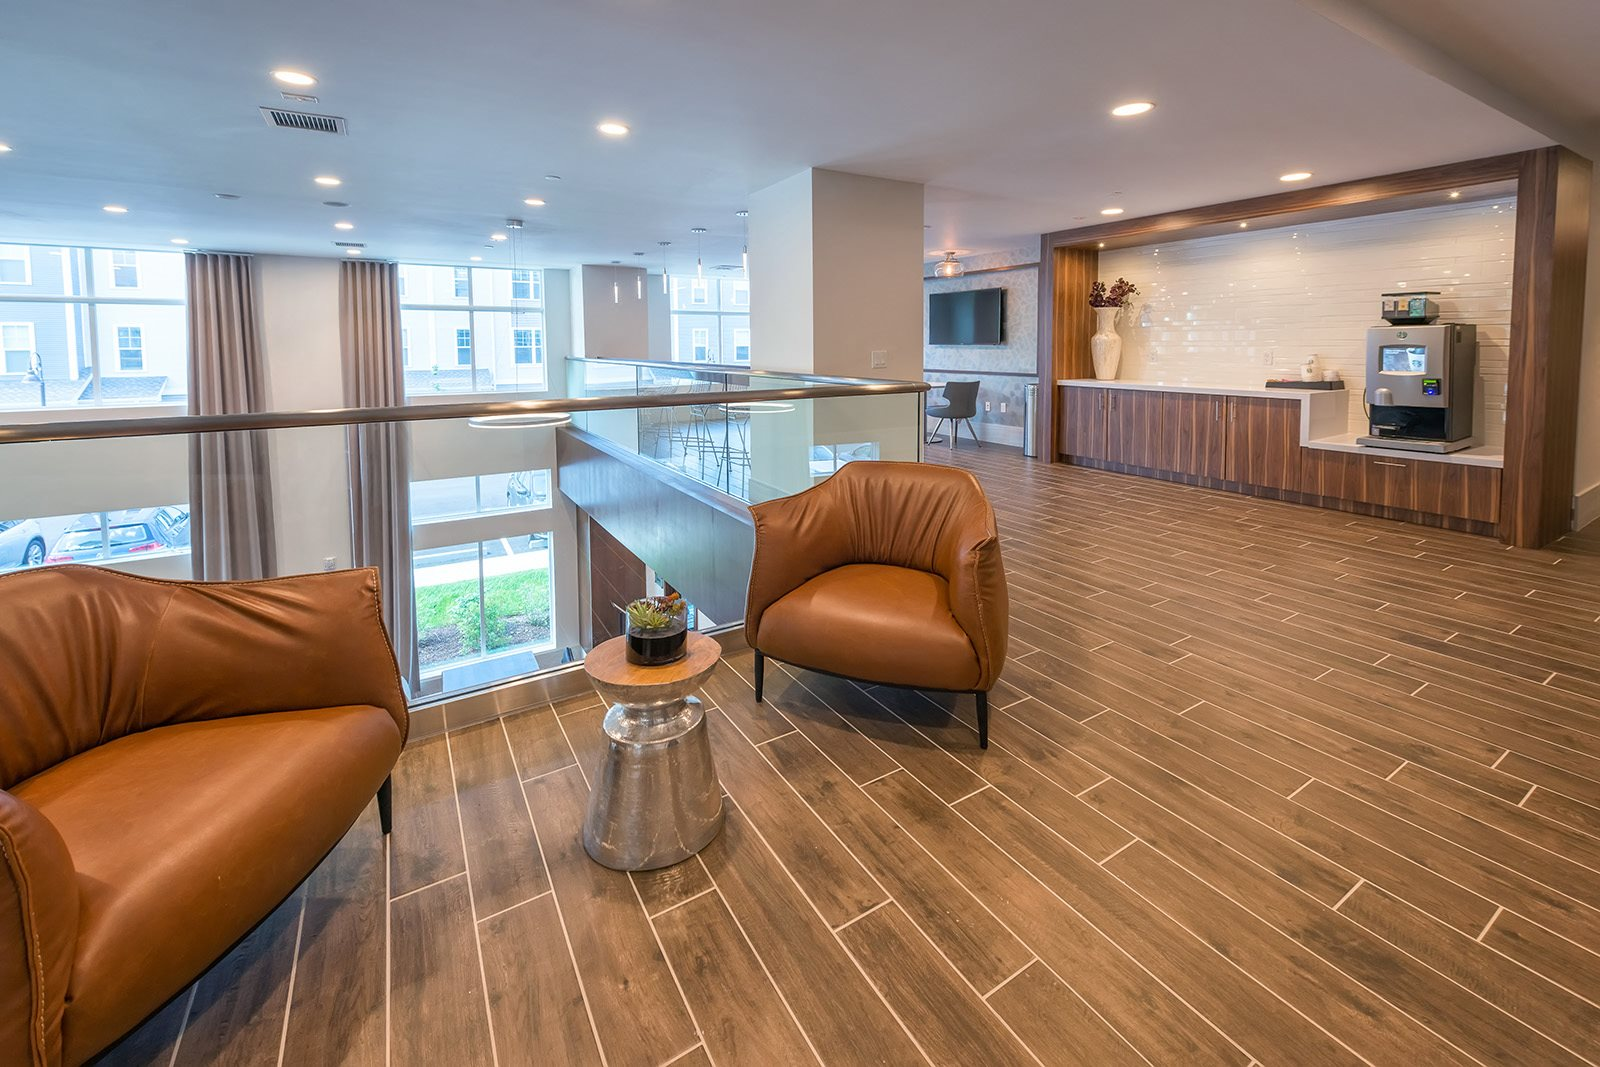 Hospitality Station with Coffee at Hopkinton by Windsor, 5 Constitution Ct